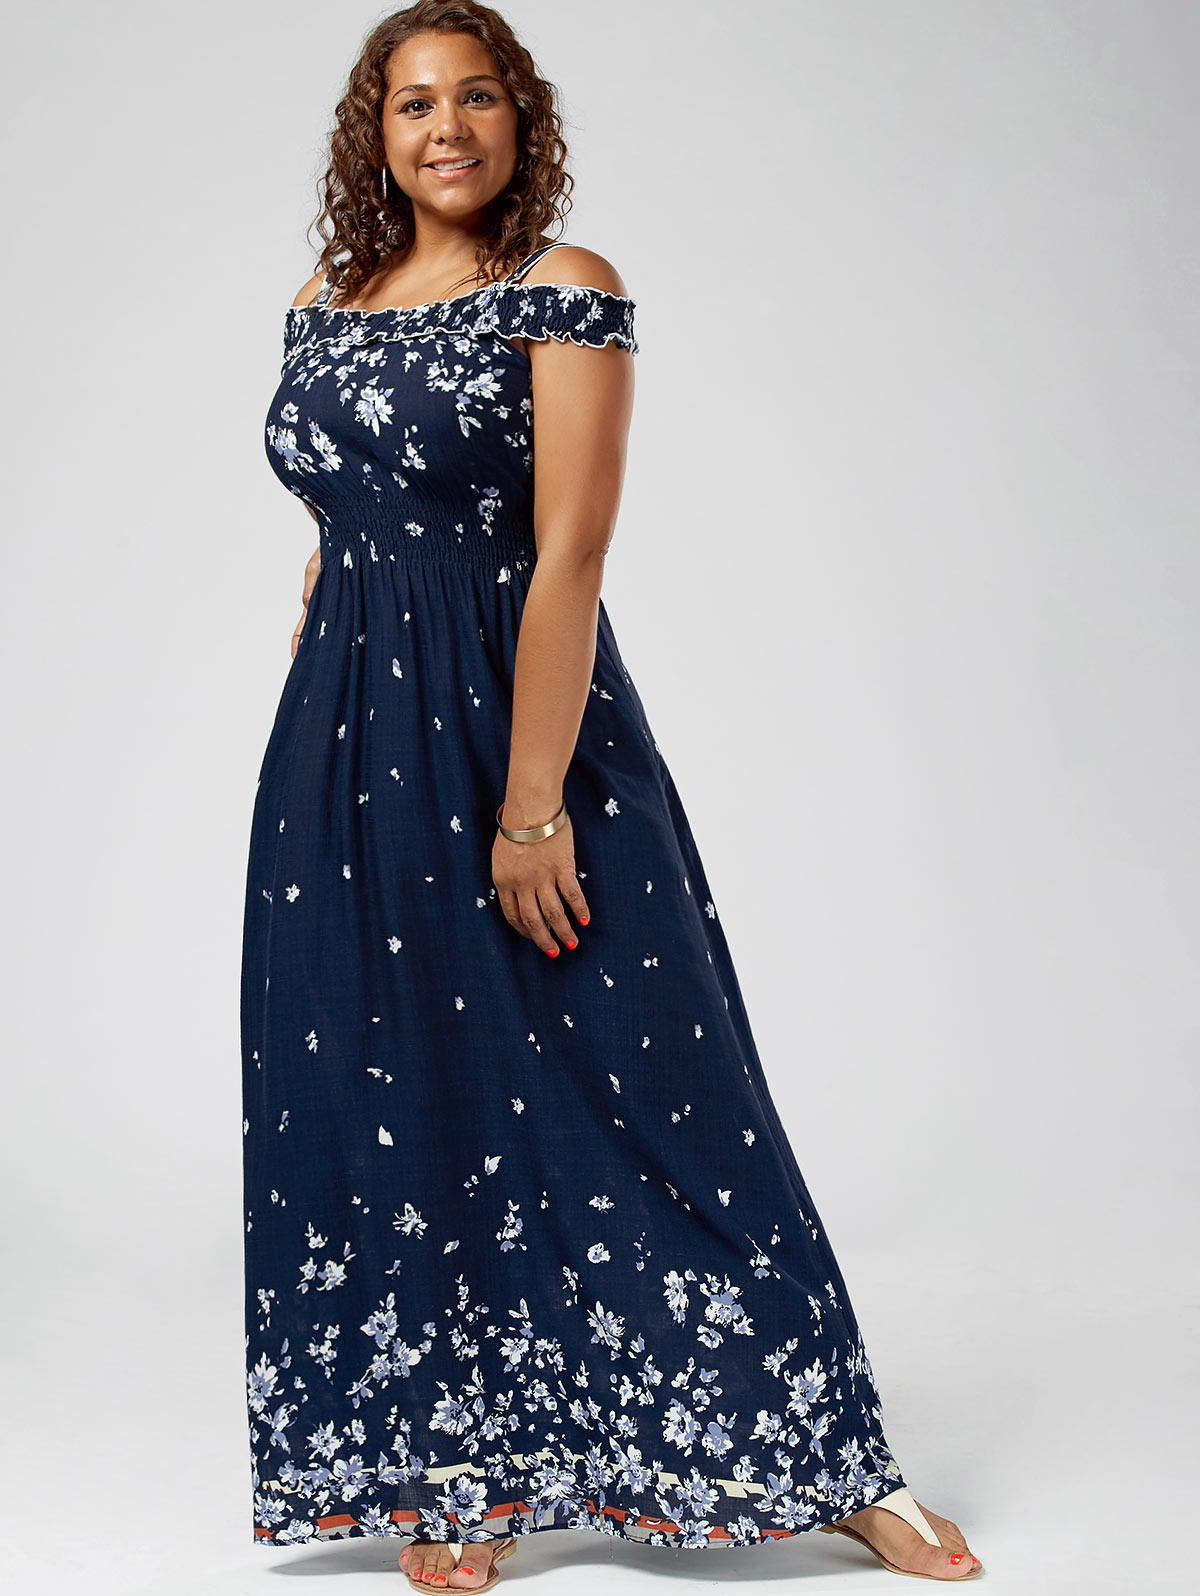 US $15.17 54% OFF|Wipalo Women Bohemian Summer Plus Size 5XL Floral Print  Cold Shoulder Maxi Dress Empire Waist Short Sleeves Long Dress Vestidos-in  ...